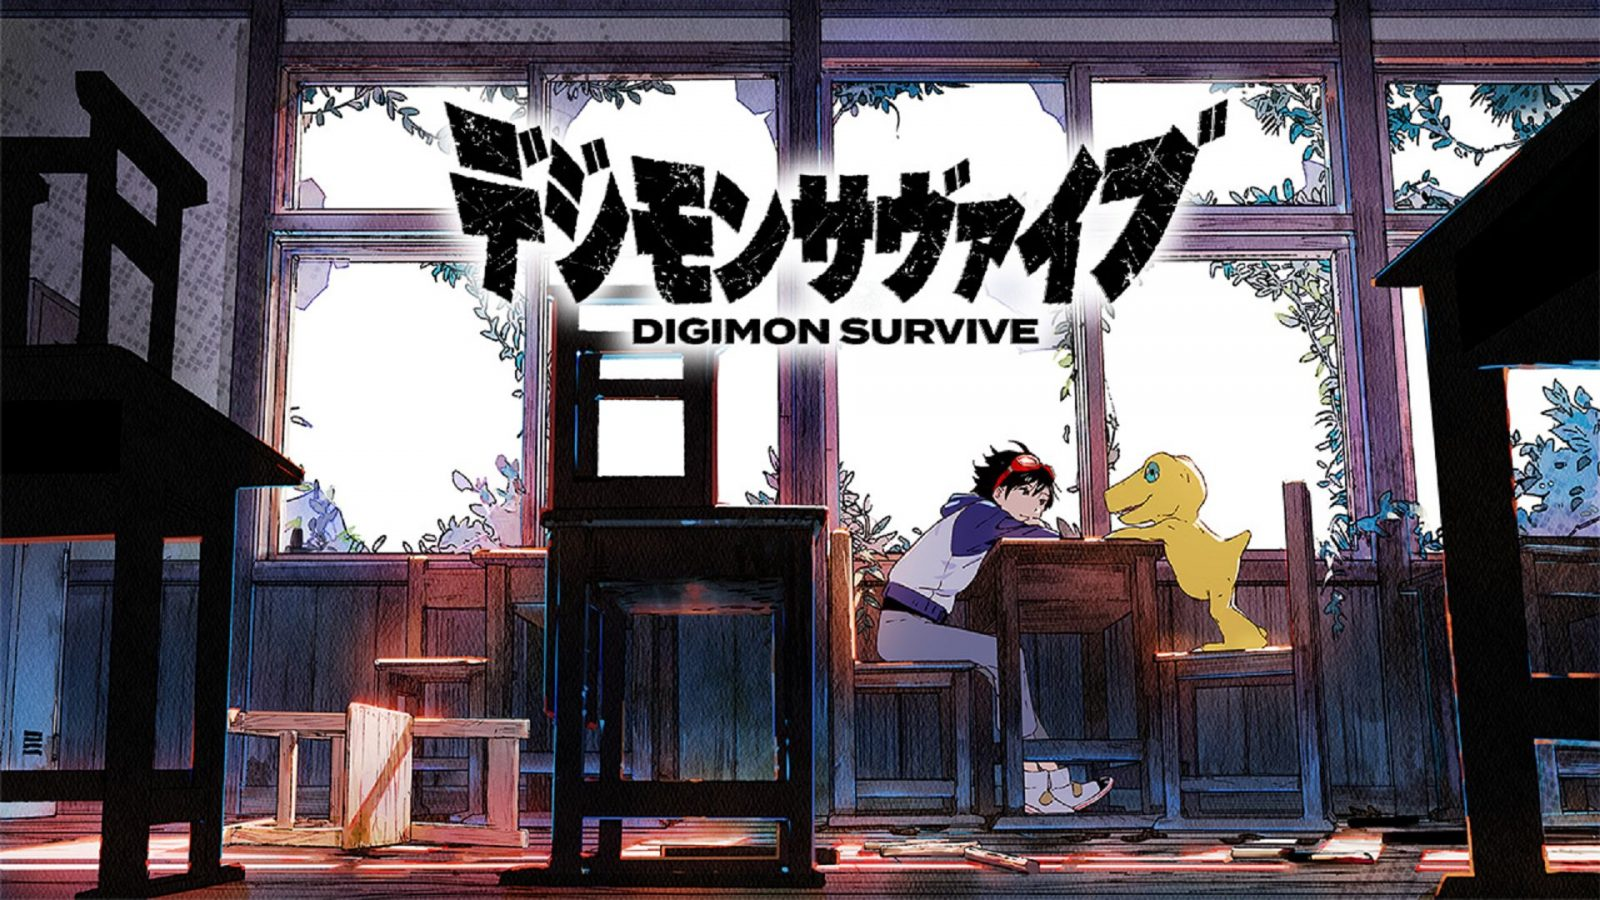 Digimon Story Cyber Sleuth Complete Announced and Digimon Survive Delayed